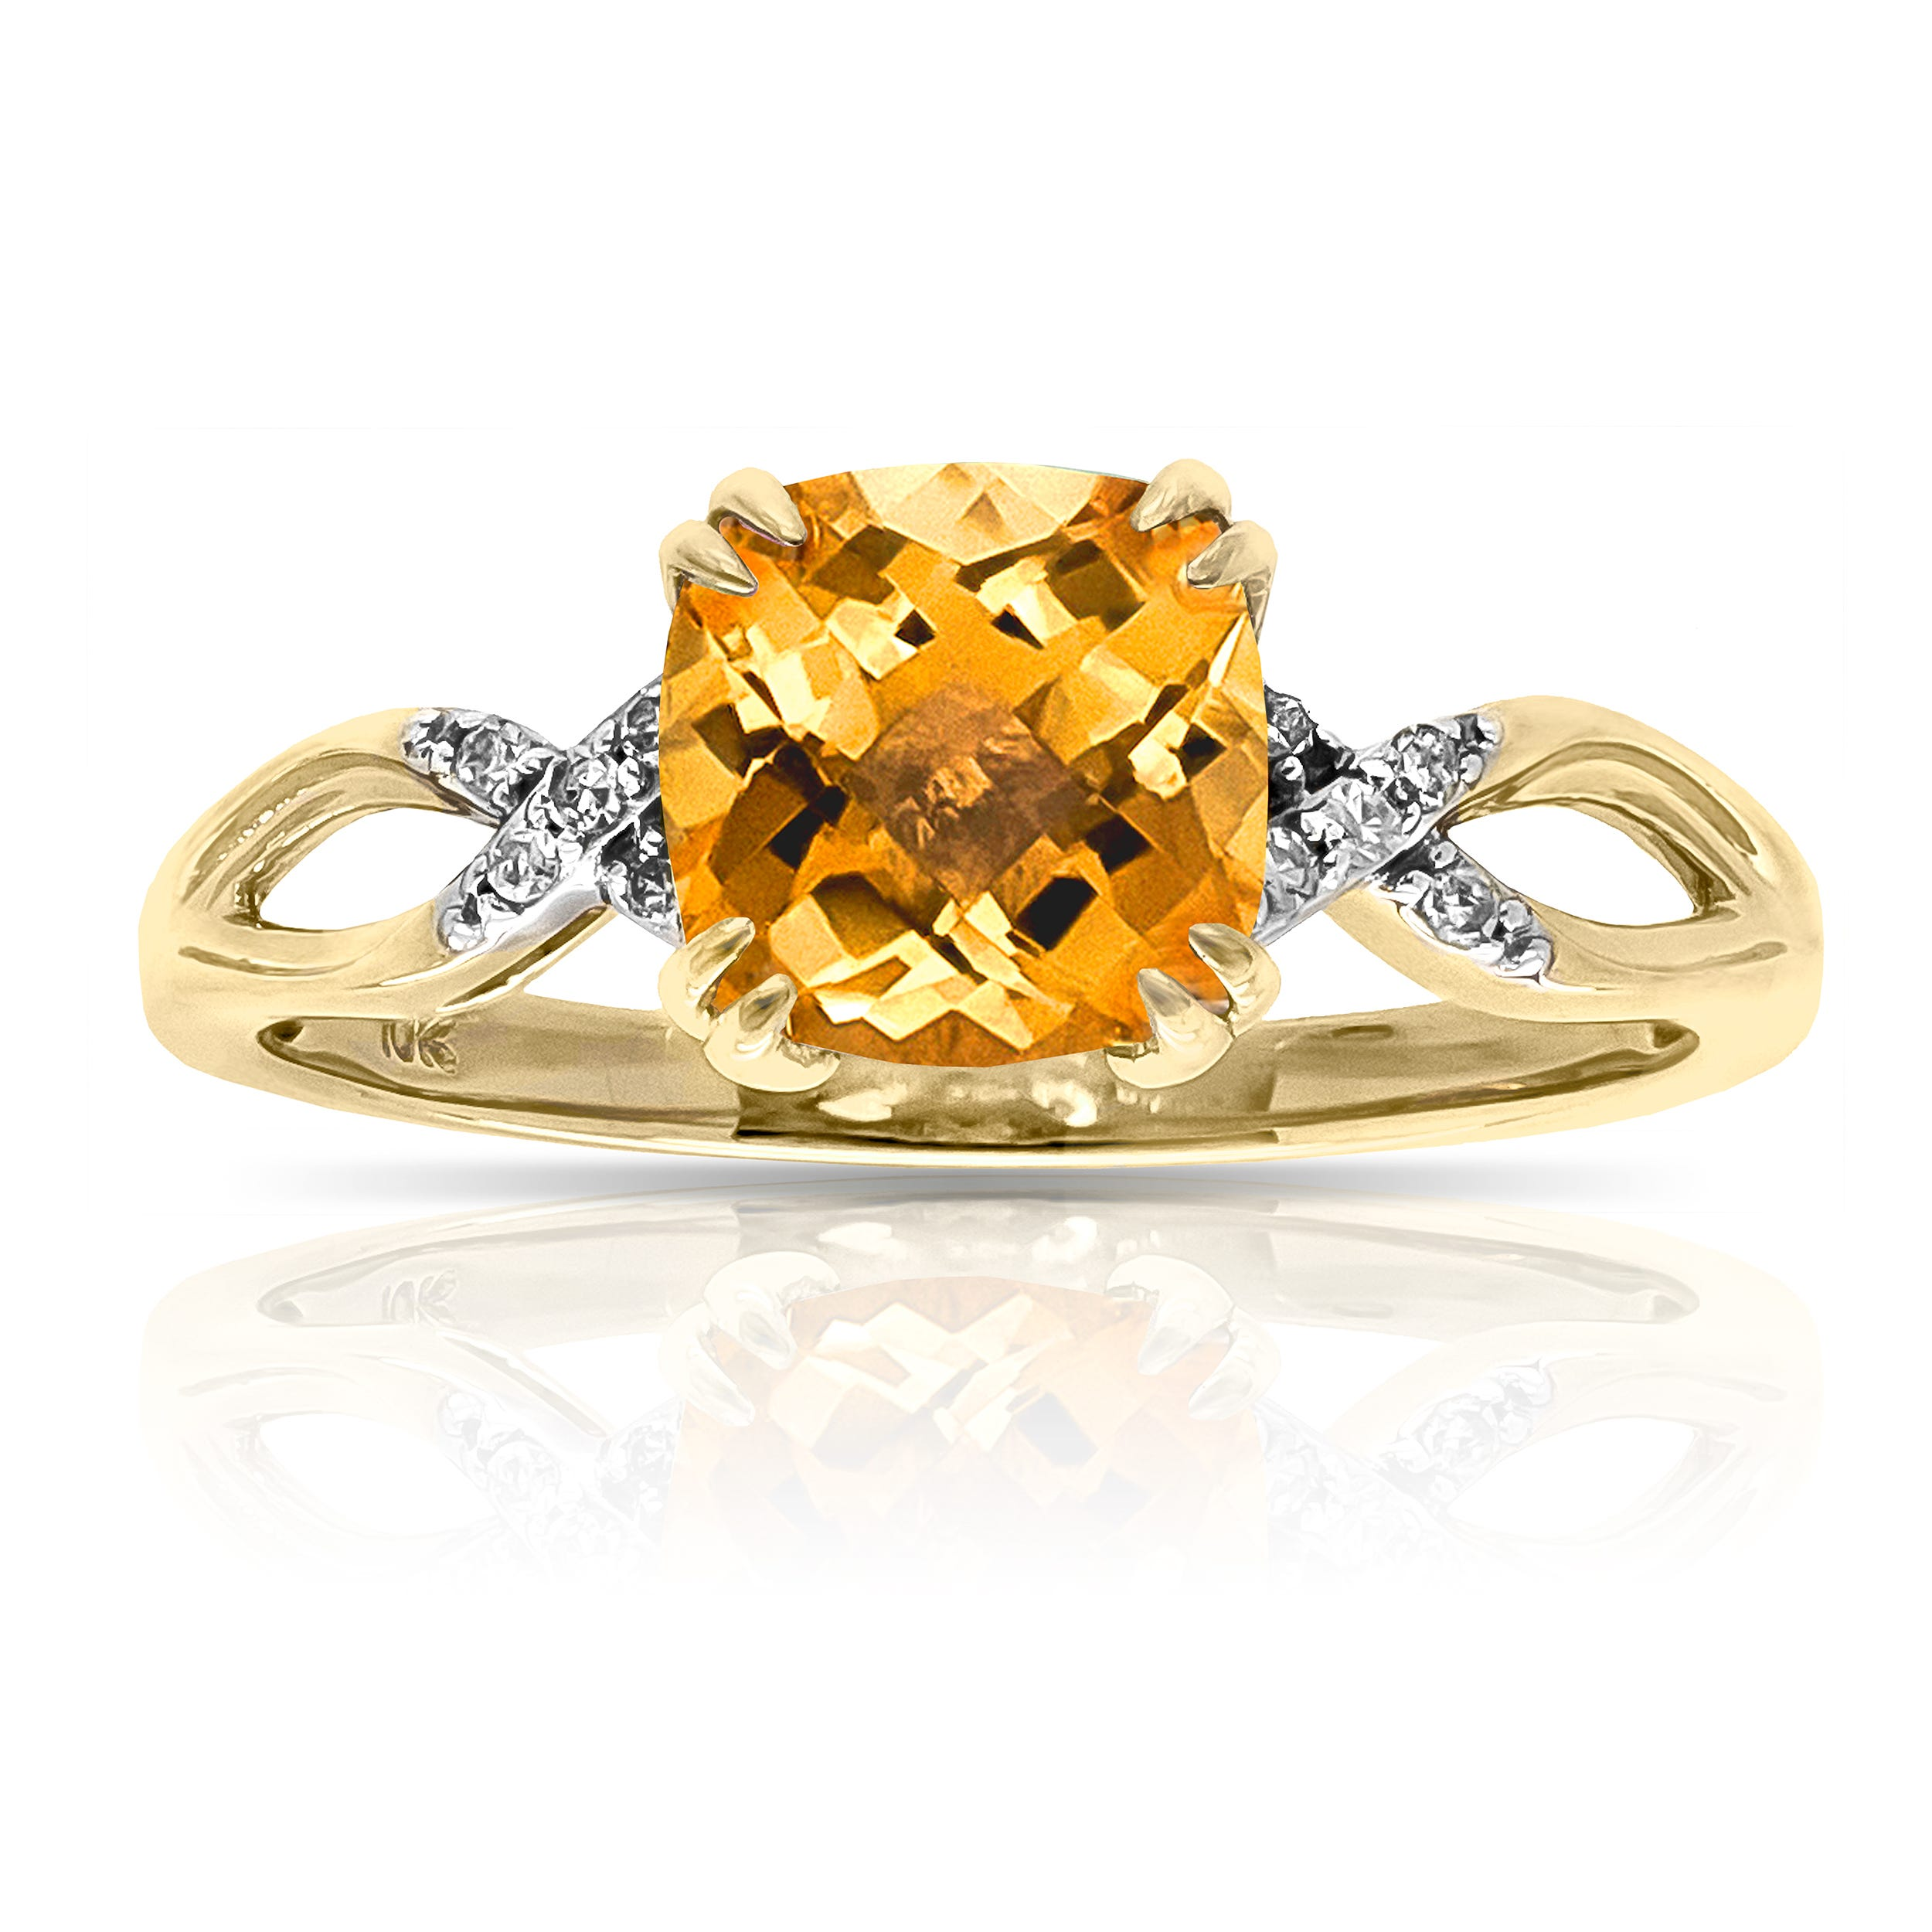 Cushion-Cut Citrine & Diamond Ring in 10k Yellow Gold